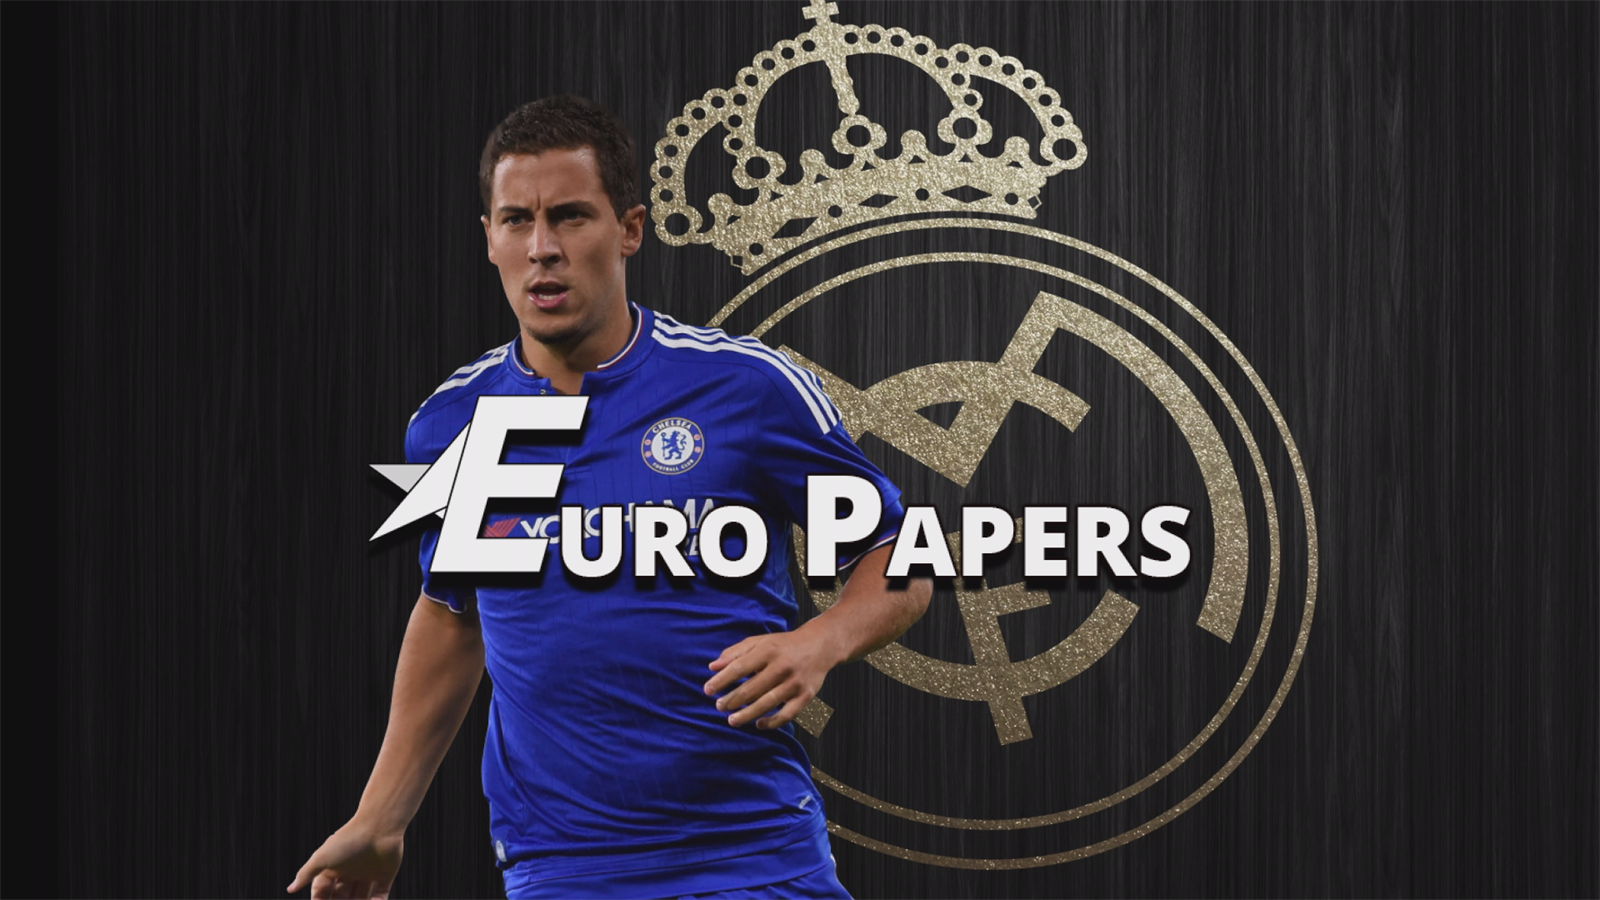 Real Madrid to replace Ronaldo with Hazard in 2016 - Euro Papers